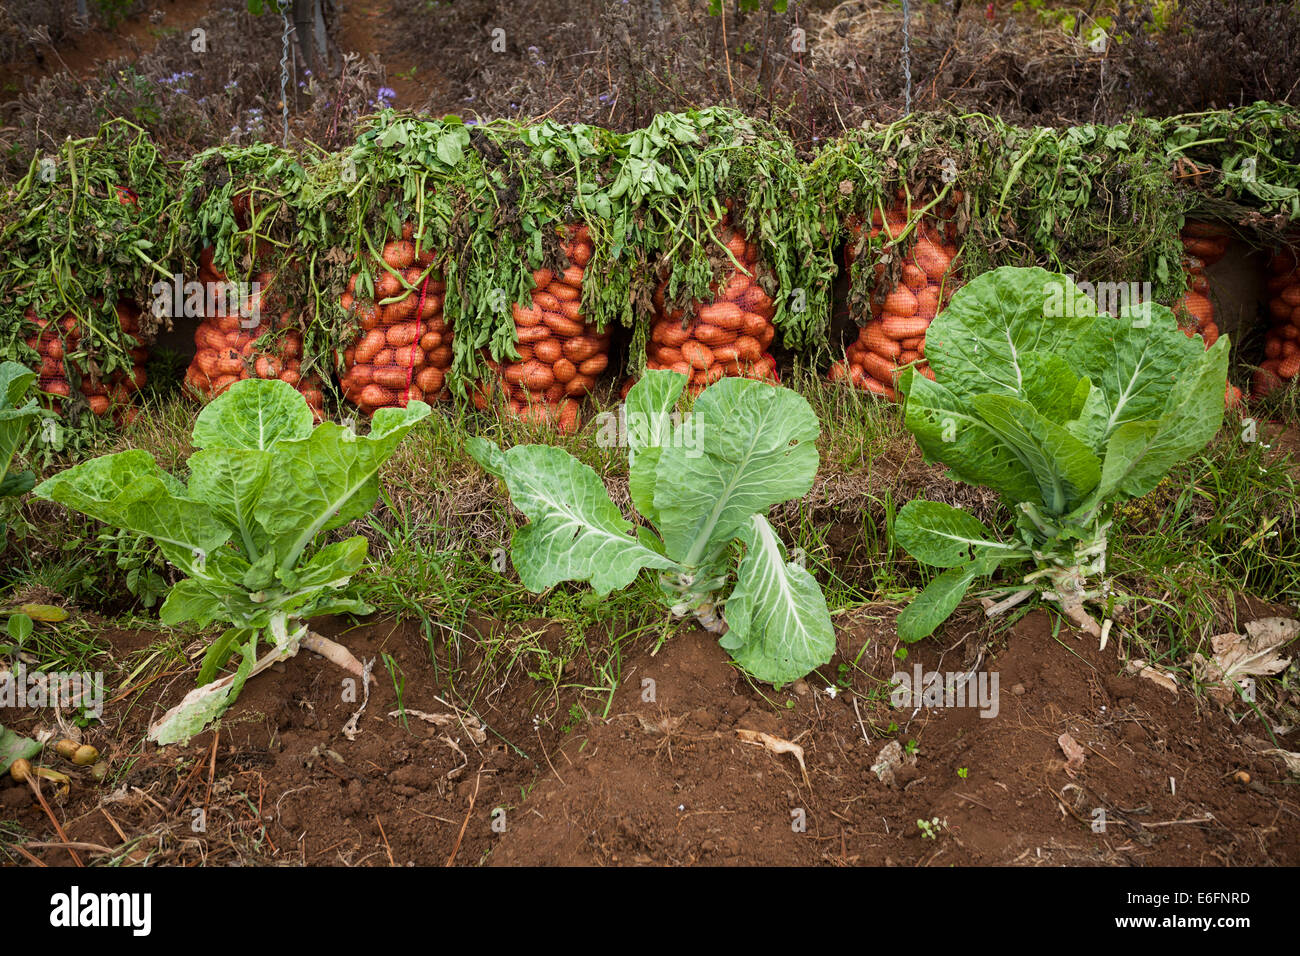 Sacks of potatoes next to a field with Tronchuda cabbage in a remote part of Madeira. - Stock Image